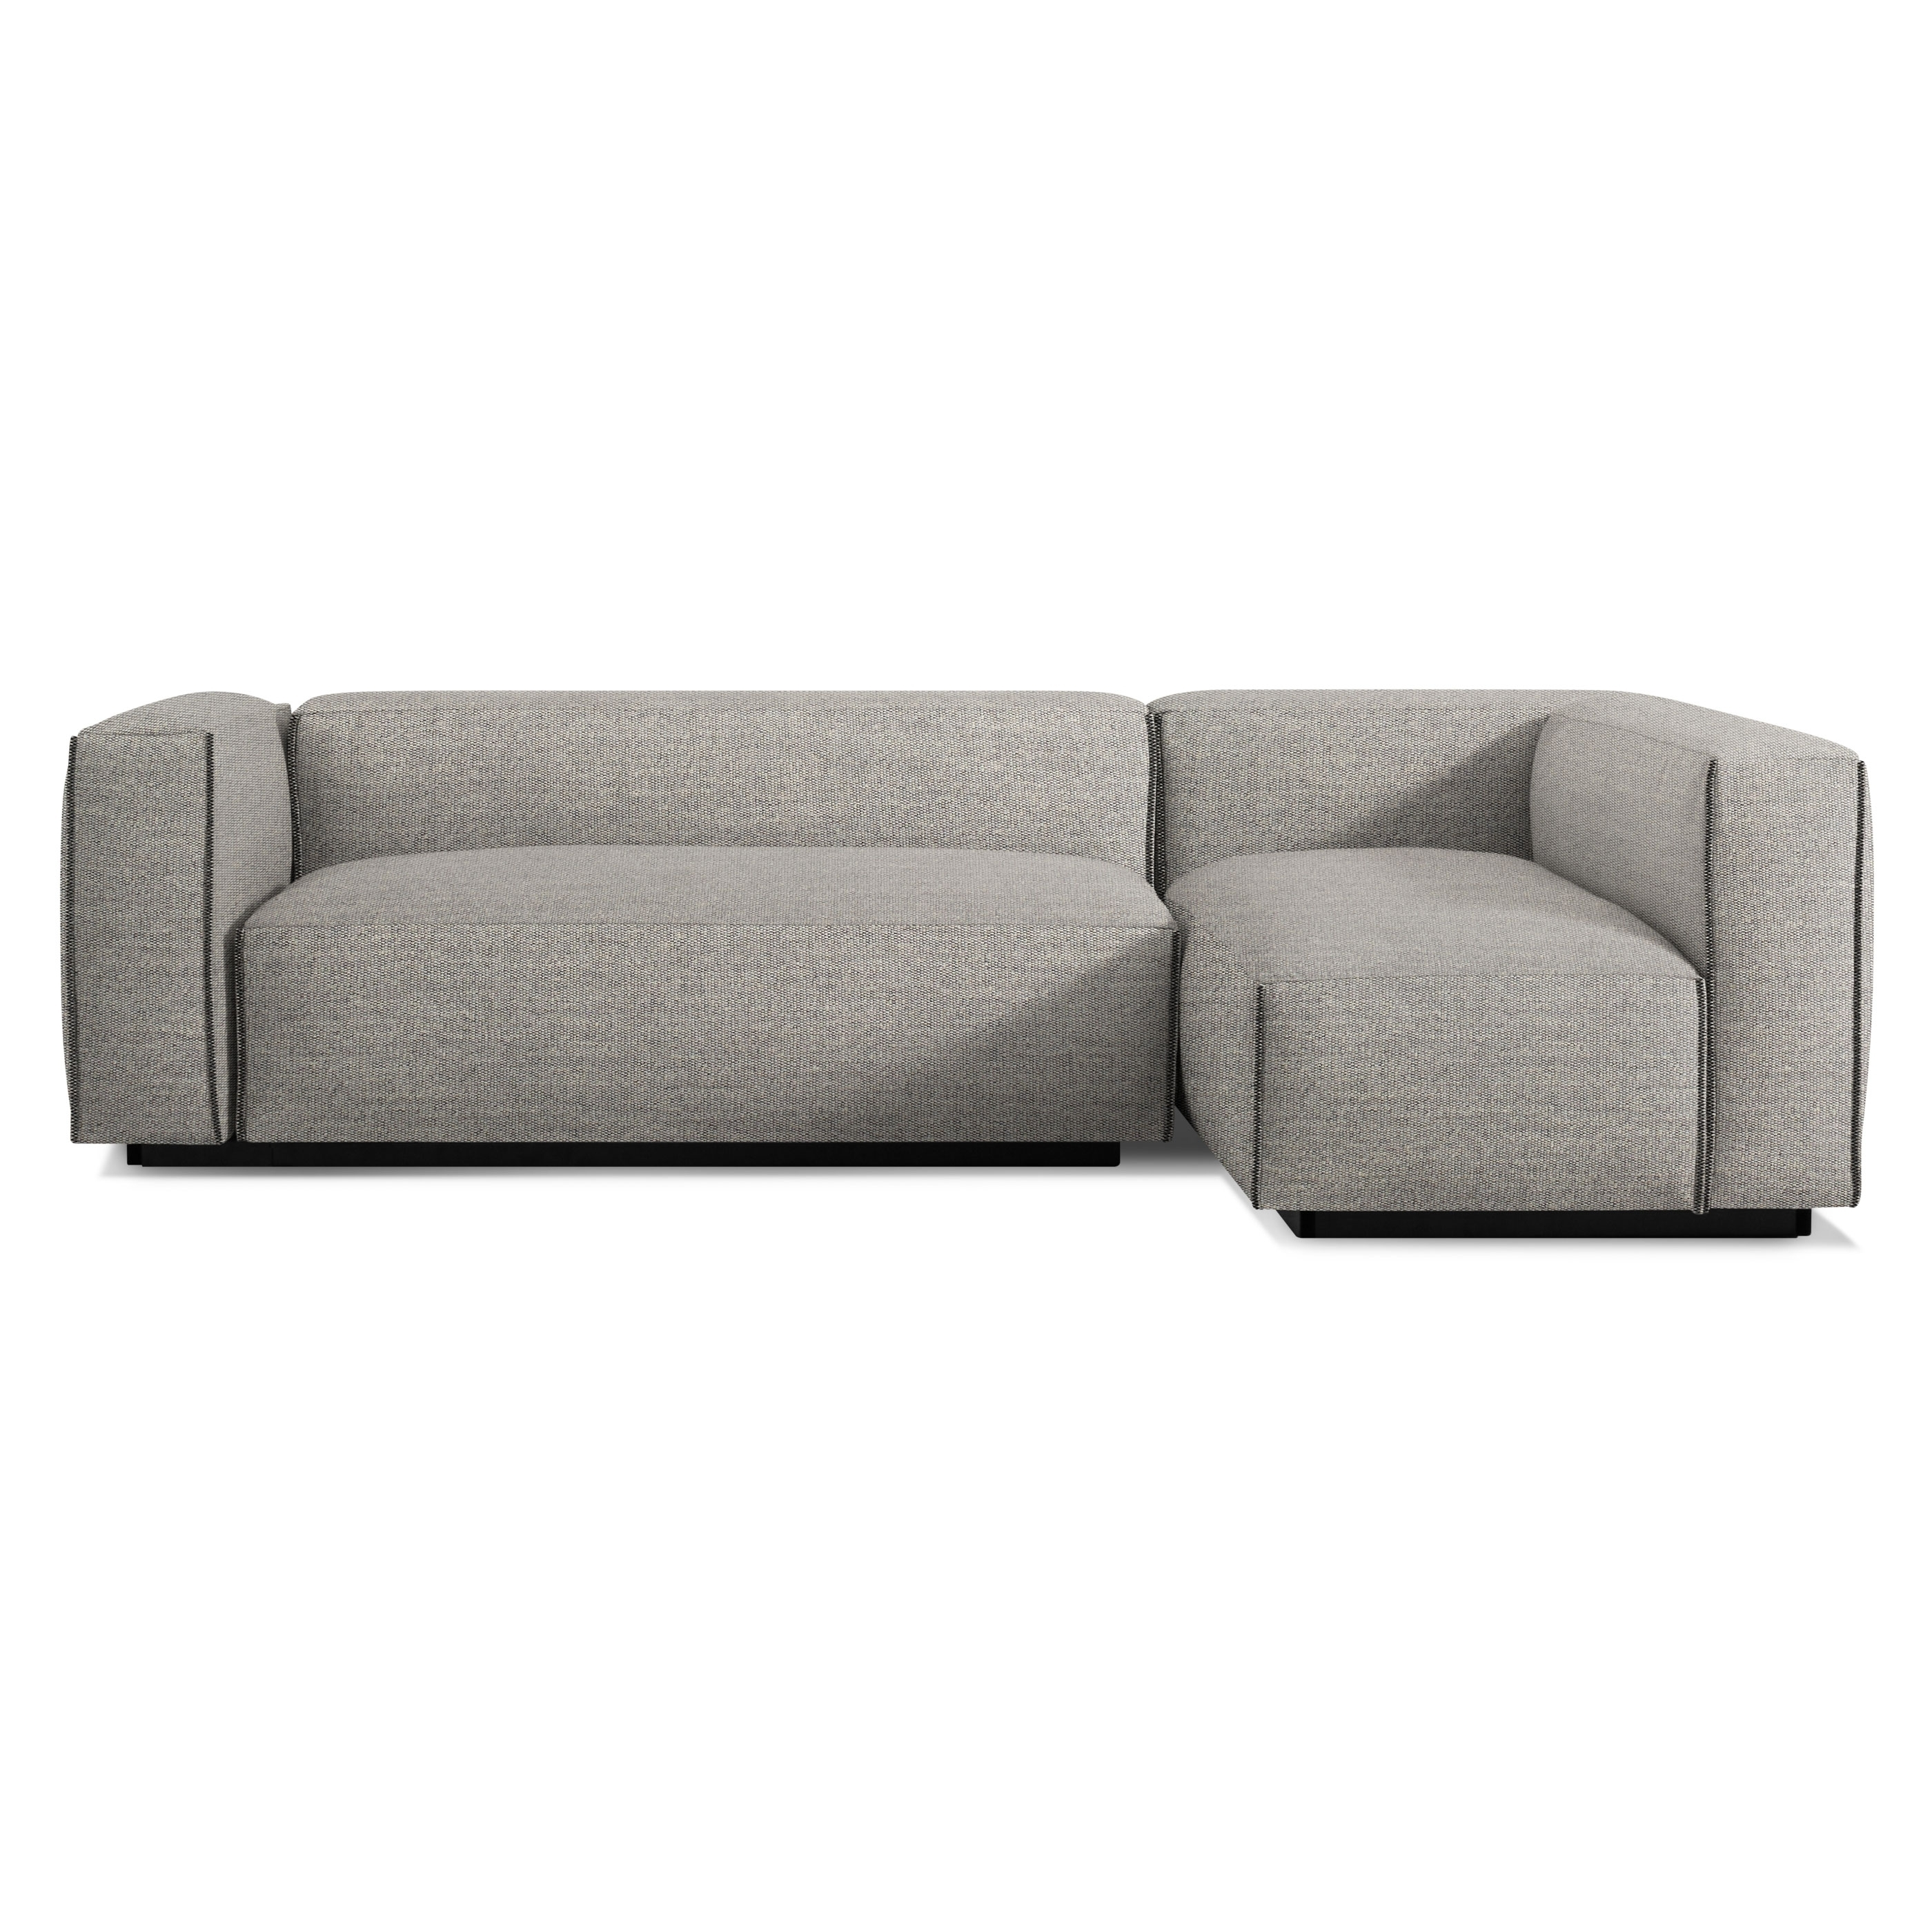 A Small Sectional Sofa Is Adorable Home Furniture For Your Living pertaining to Avery 2 Piece Sectionals With Raf Armless Chaise (Image 2 of 30)